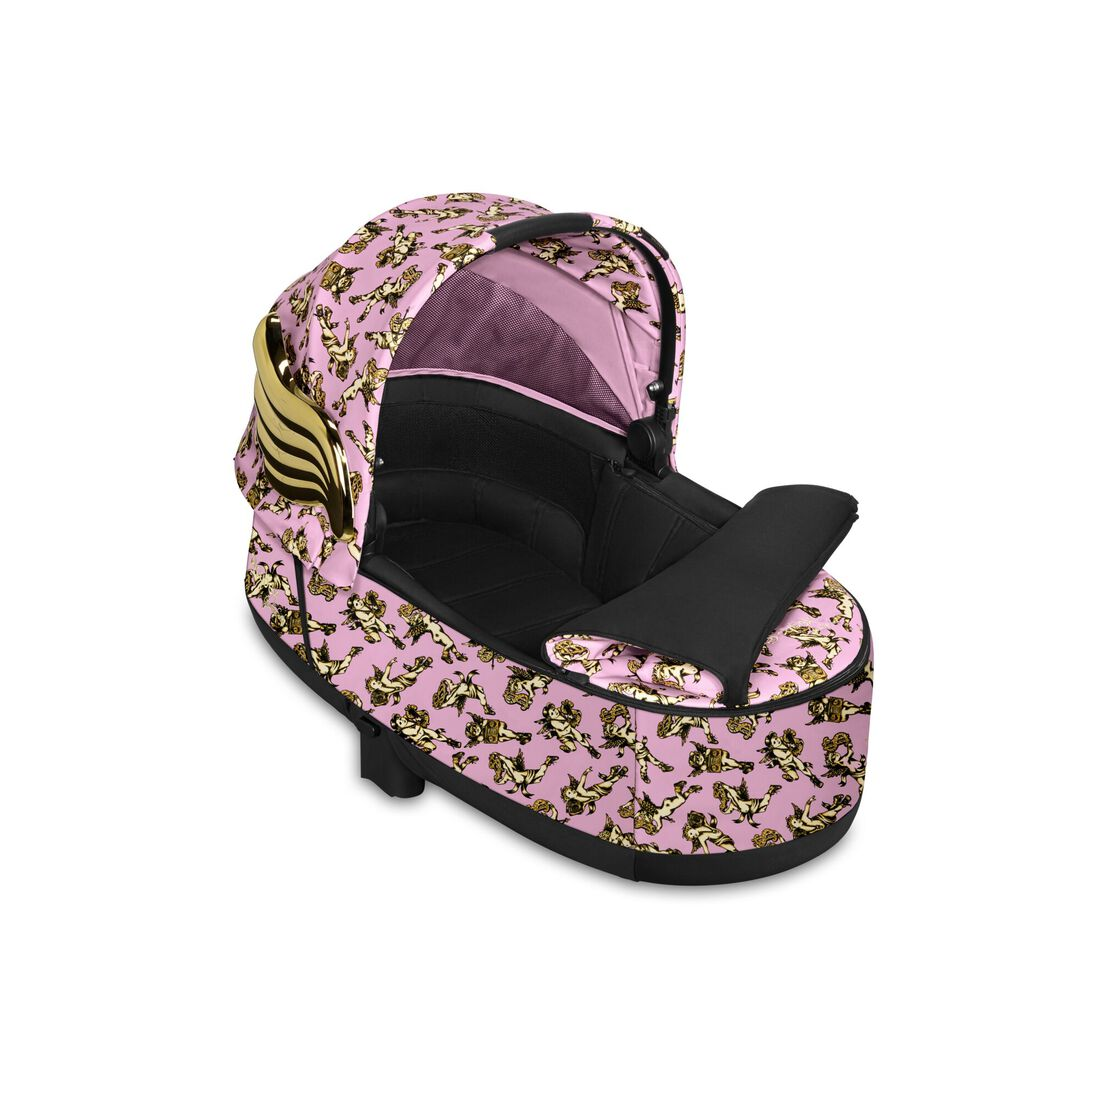 CYBEX Priam Lux Carry Cot - Cherubs Pink in Cherubs Pink large image number 2